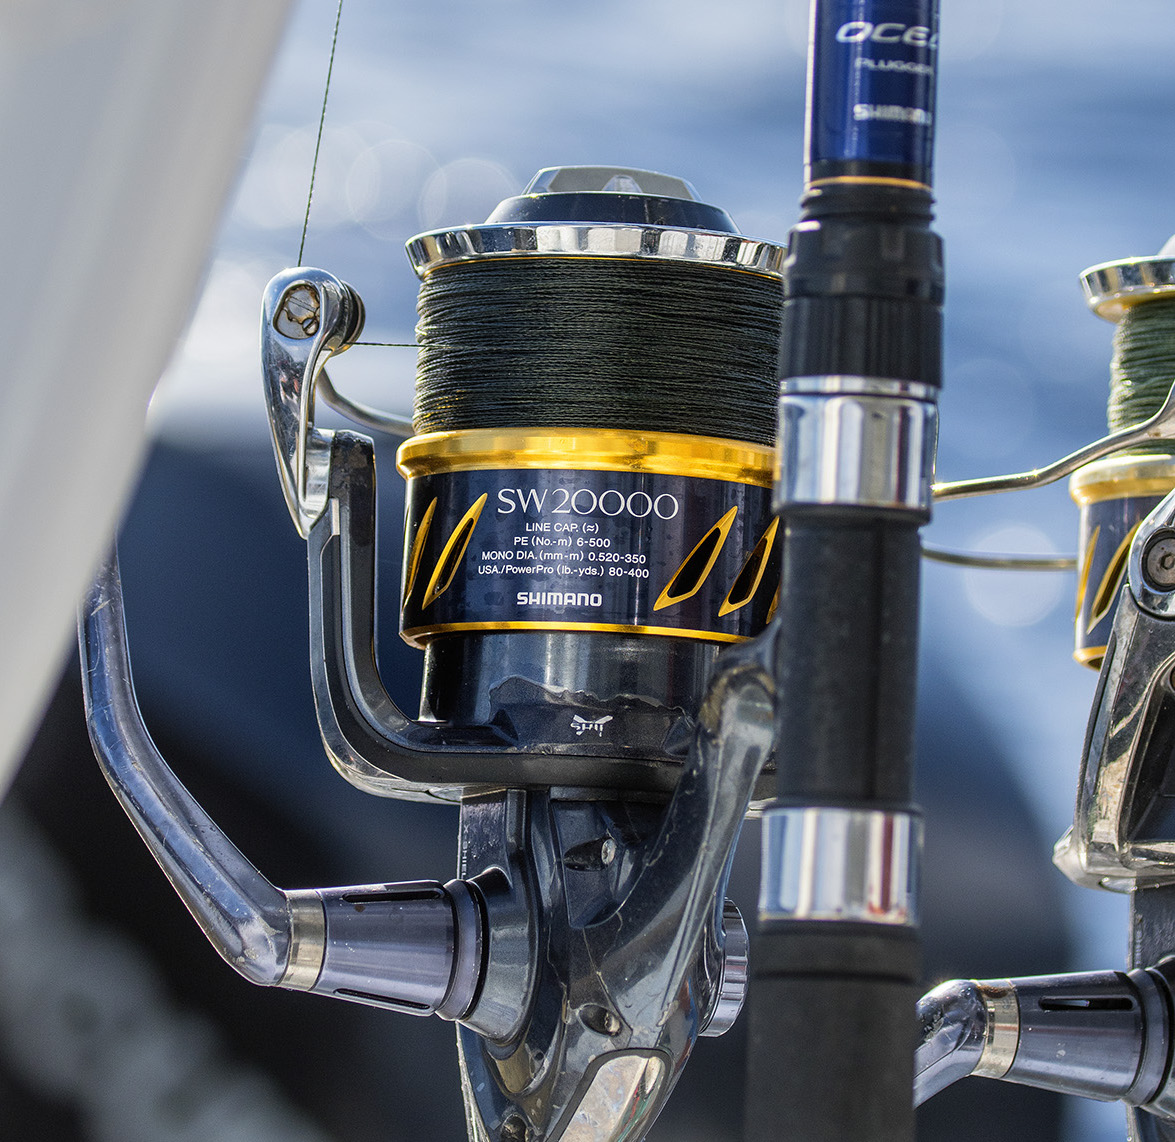 Shimano | Spinning Reel — Into the Blue Fishing Blog